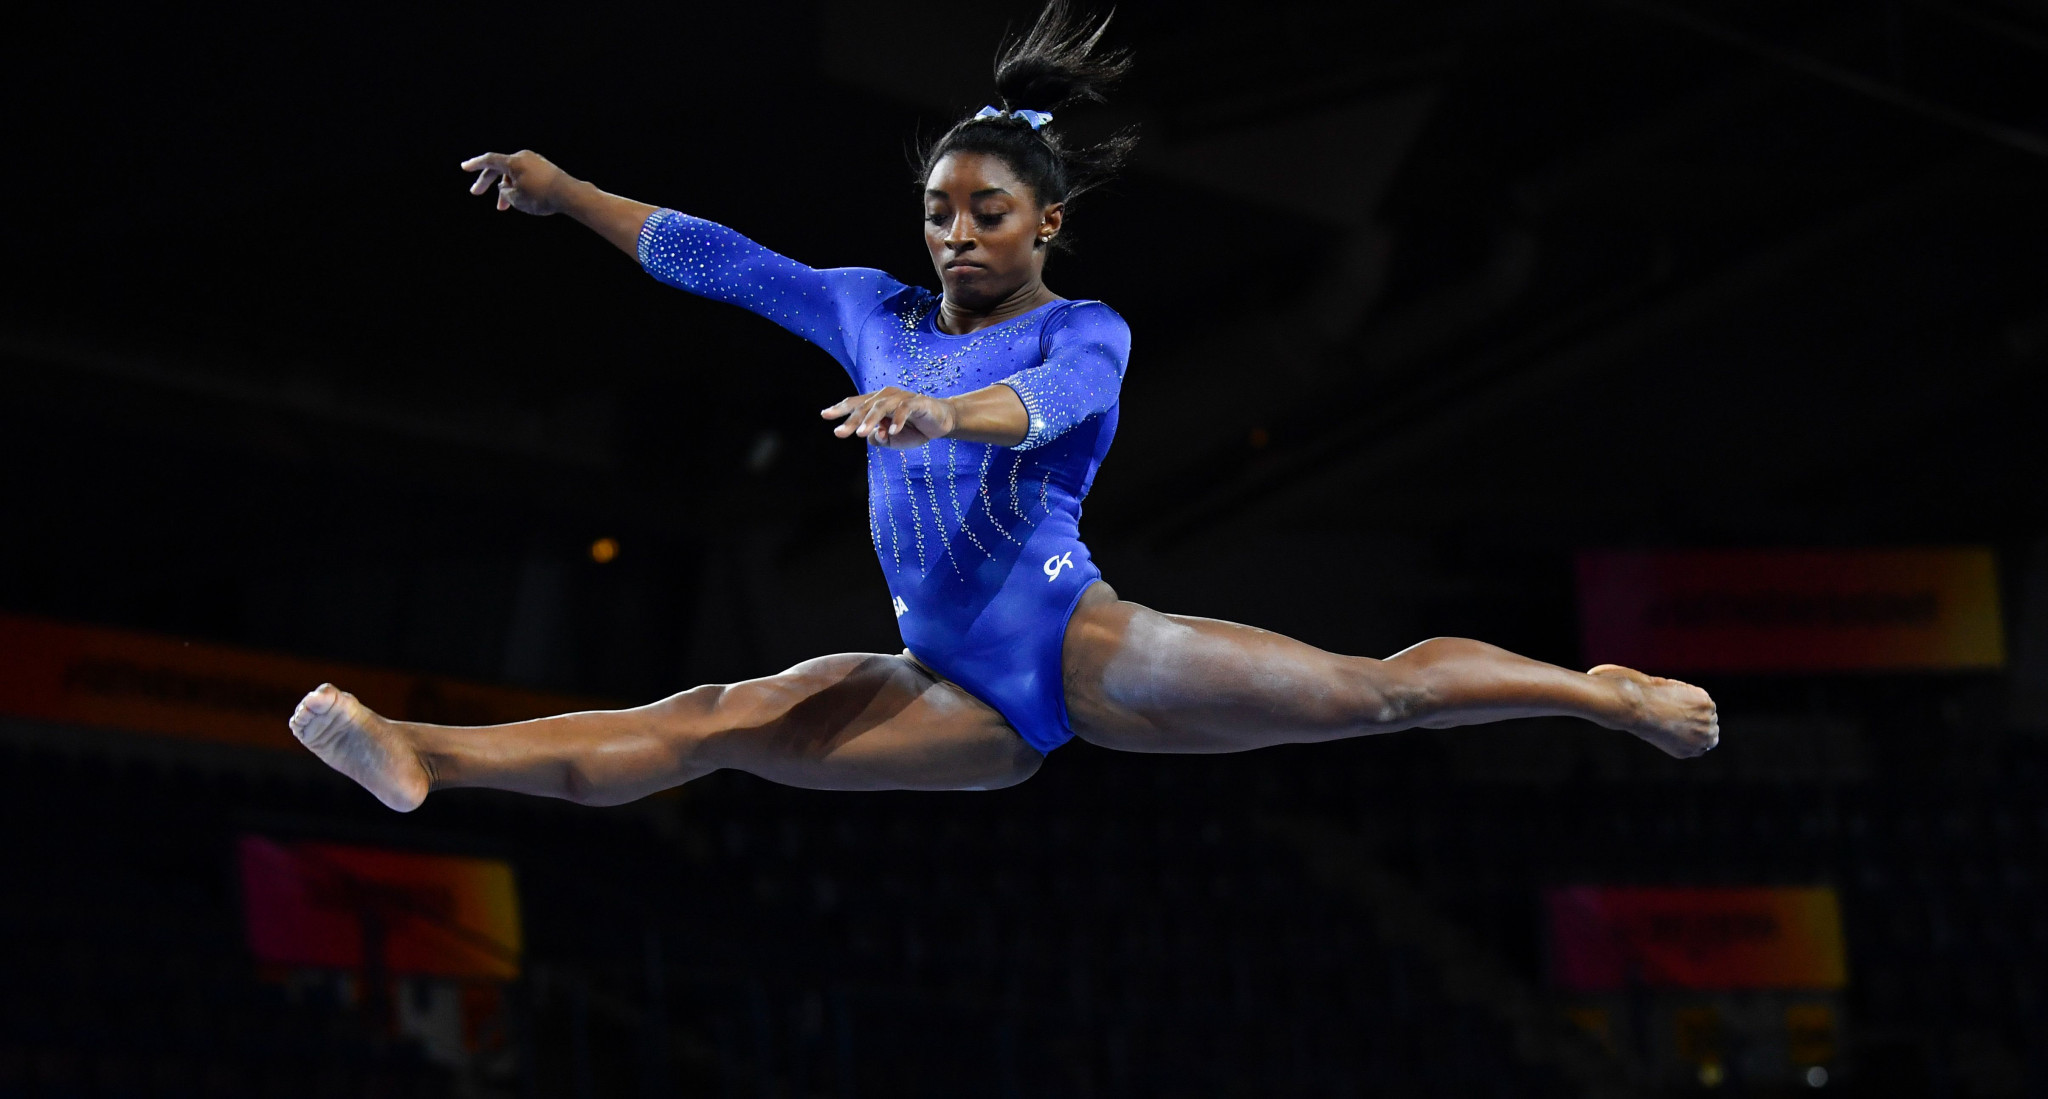 Biles on the brink of history at Artistic Gymnastics World Championships